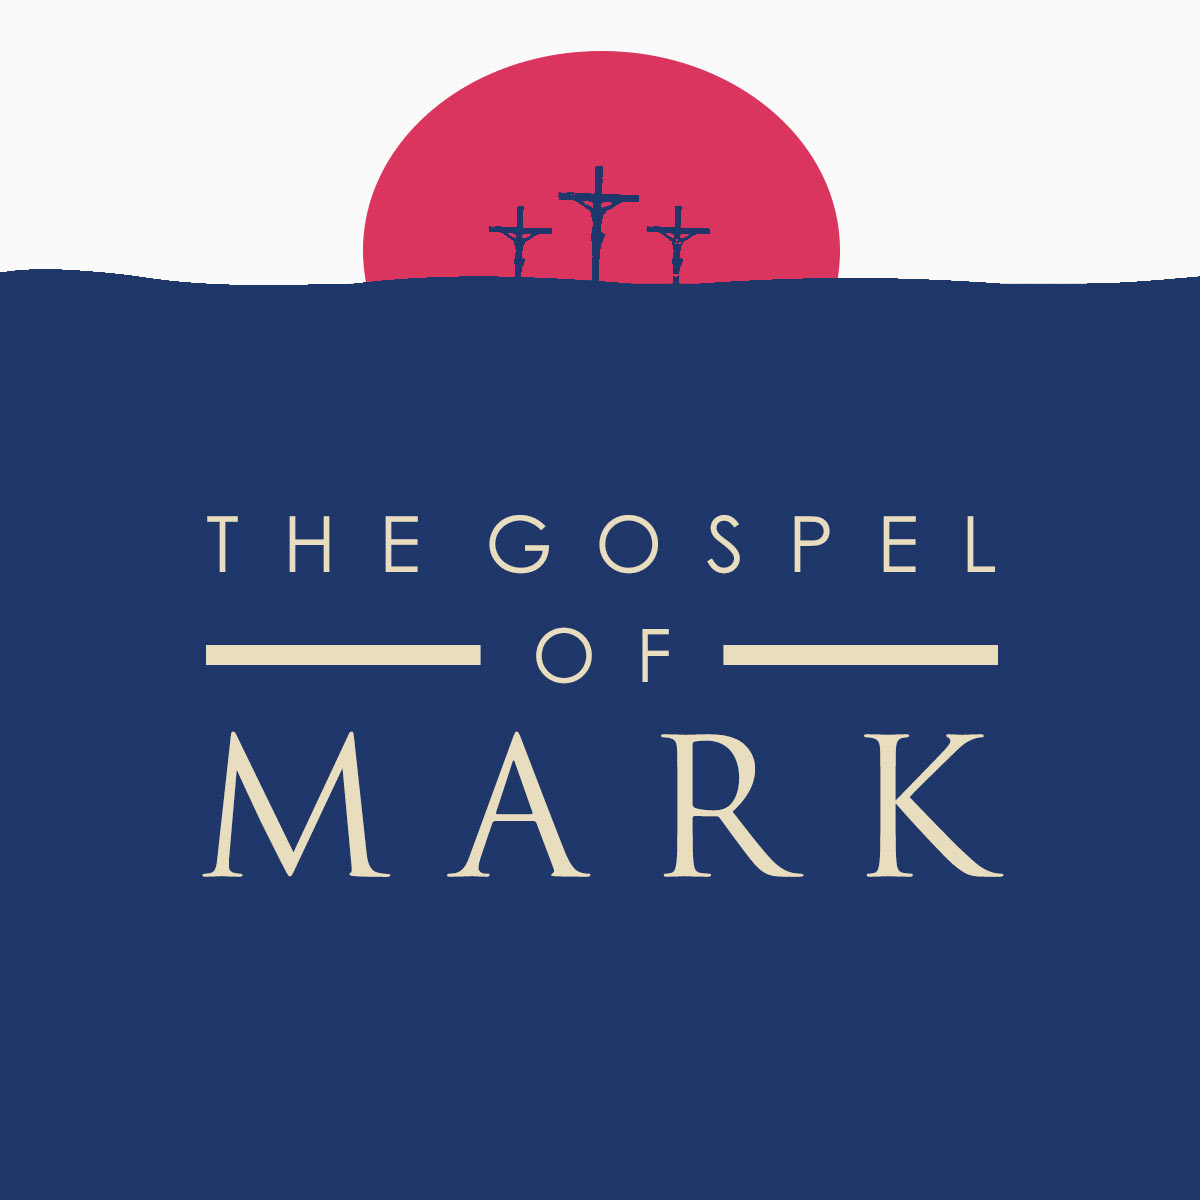 In the Gospel of Mark we explore the story of the God/man Jesus Christ to discover his mission and our response.